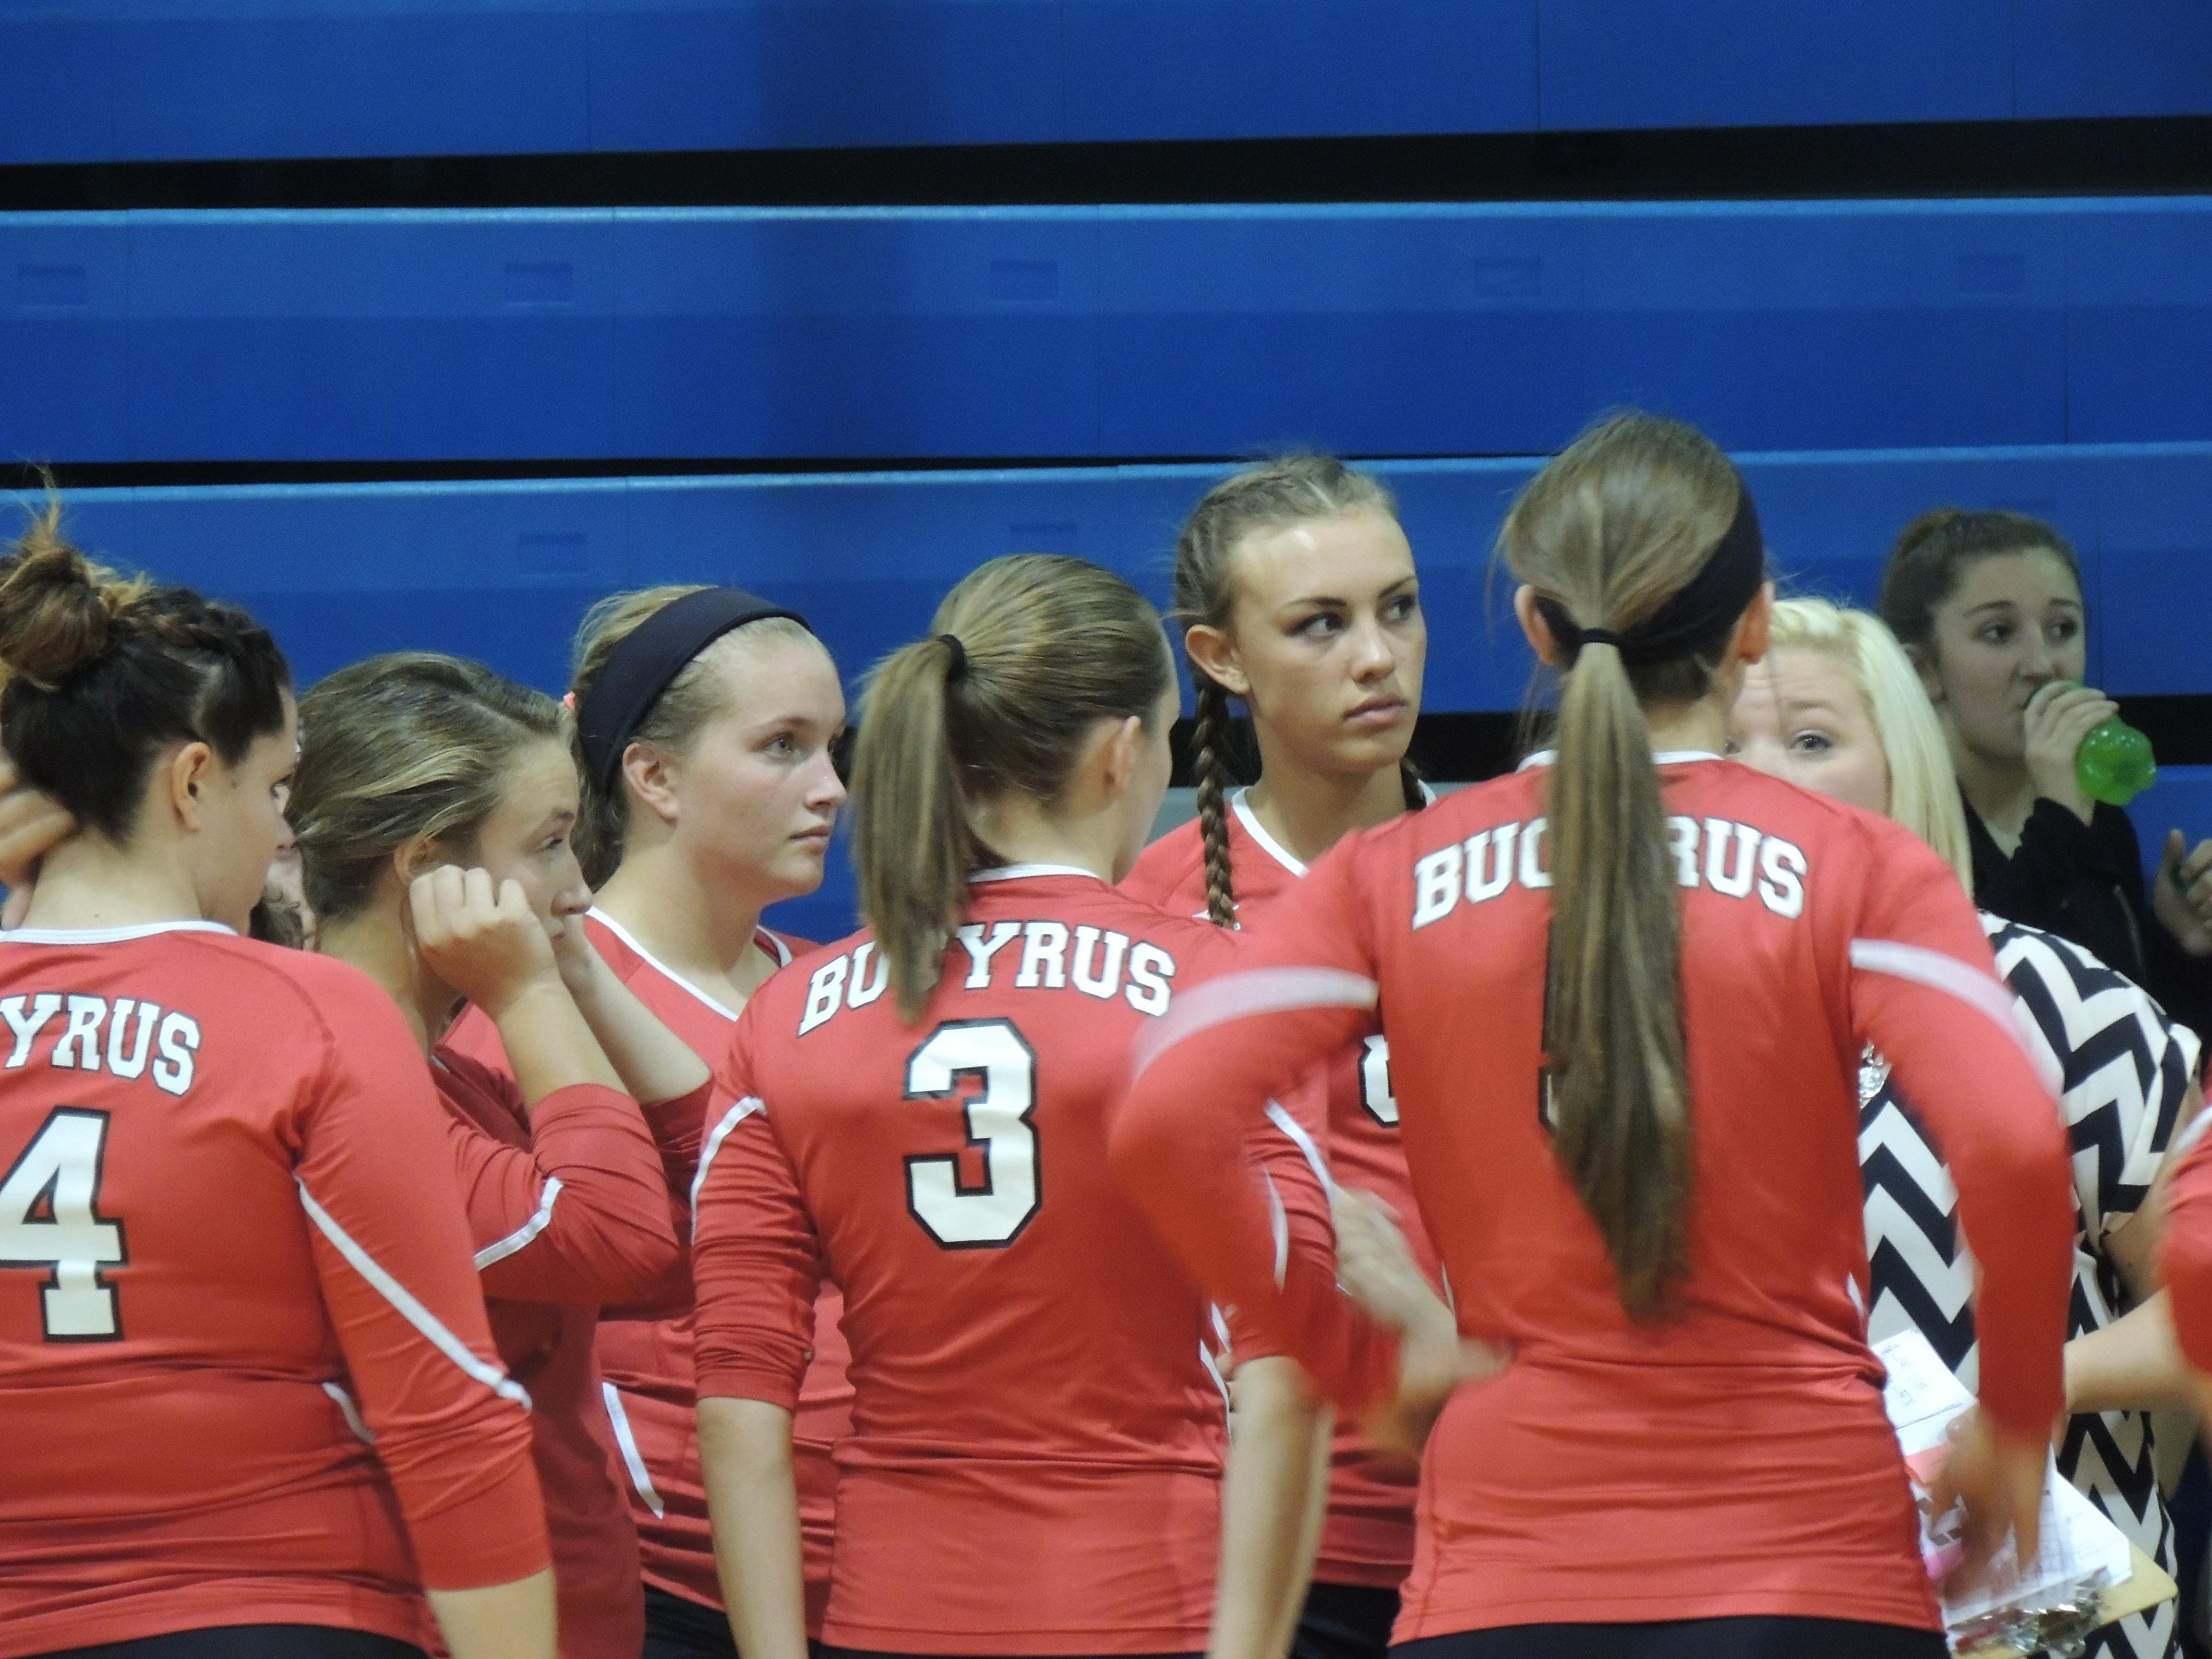 The Bucyrus Redmen talk strategy before their match with the Wynford Royals